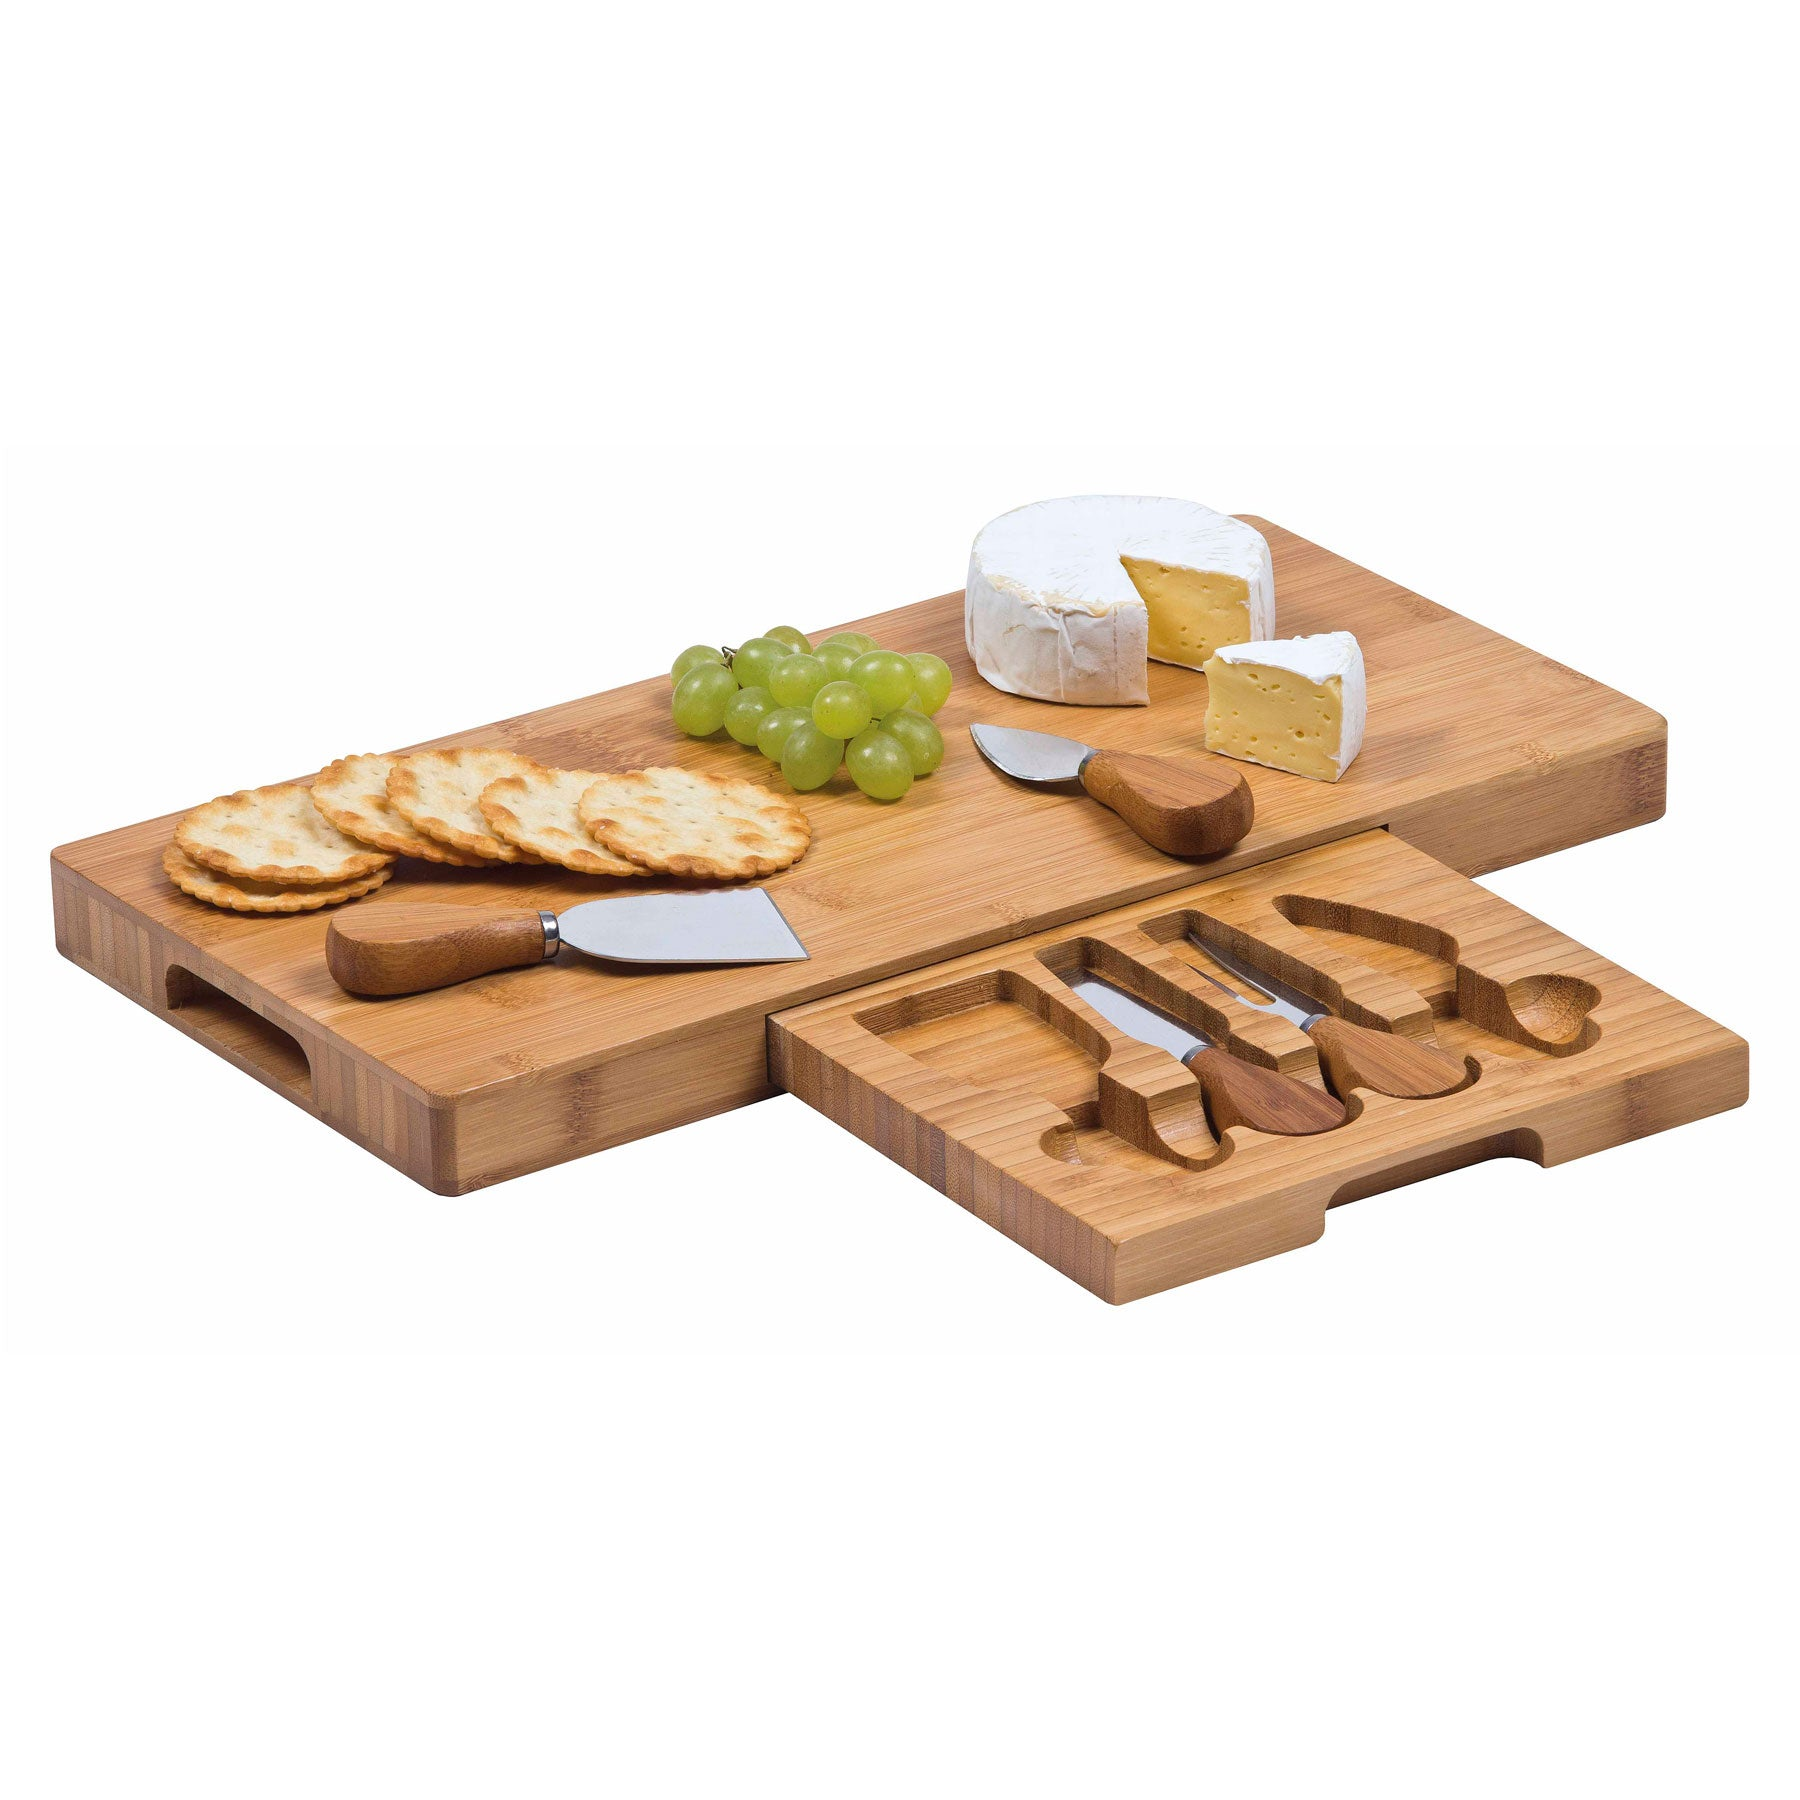 Gourmet Cheese Board - PRE-ORDER - Delivery Early June